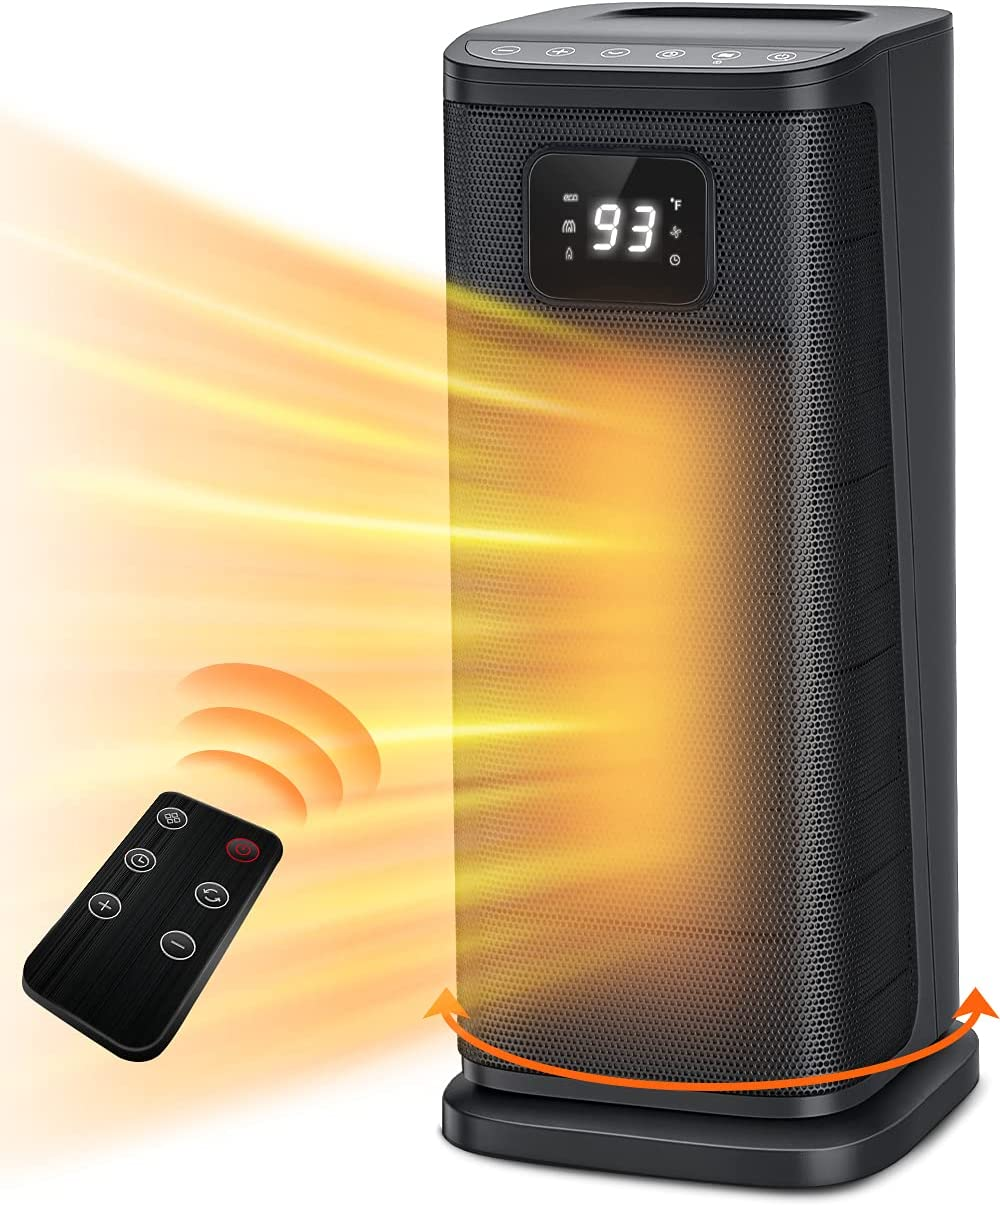 FHstars Space Heater for Indoor Use, 1s Fast Heating Electric Oscillating Portable Heaters with Thermostat, 1500W Ceramic PTC Room Heater with 4 Modes, 24H Timer, LED Display, Safe for Office Use…